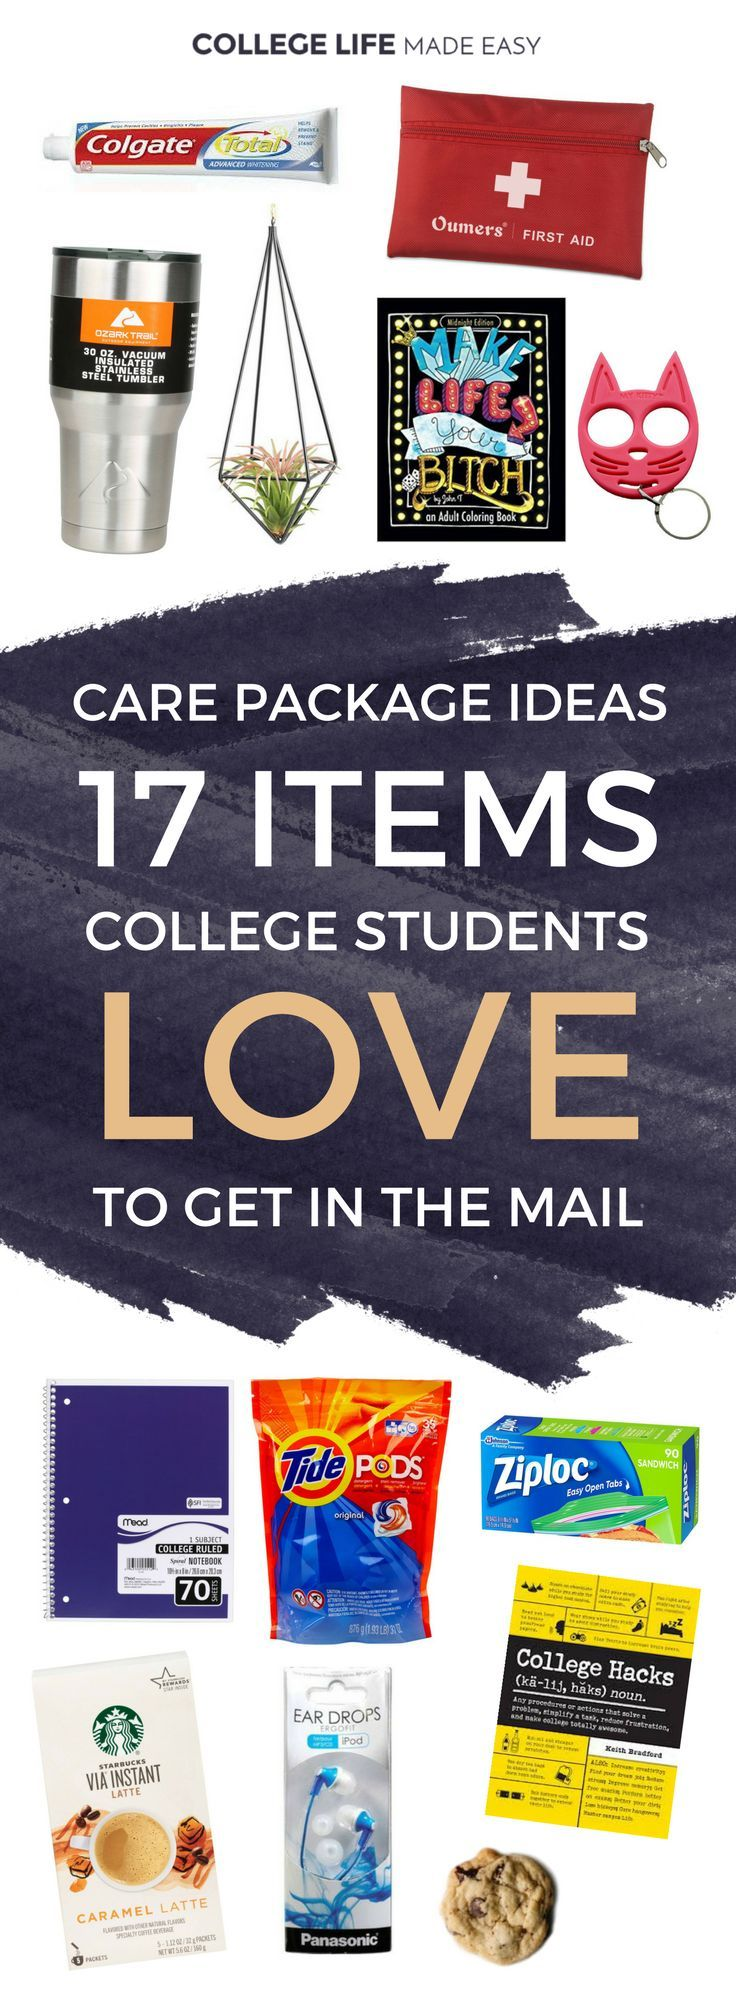 Pics photos funny college survival kit ideas - Care Package Ideas 17 Items College Students Love To Get